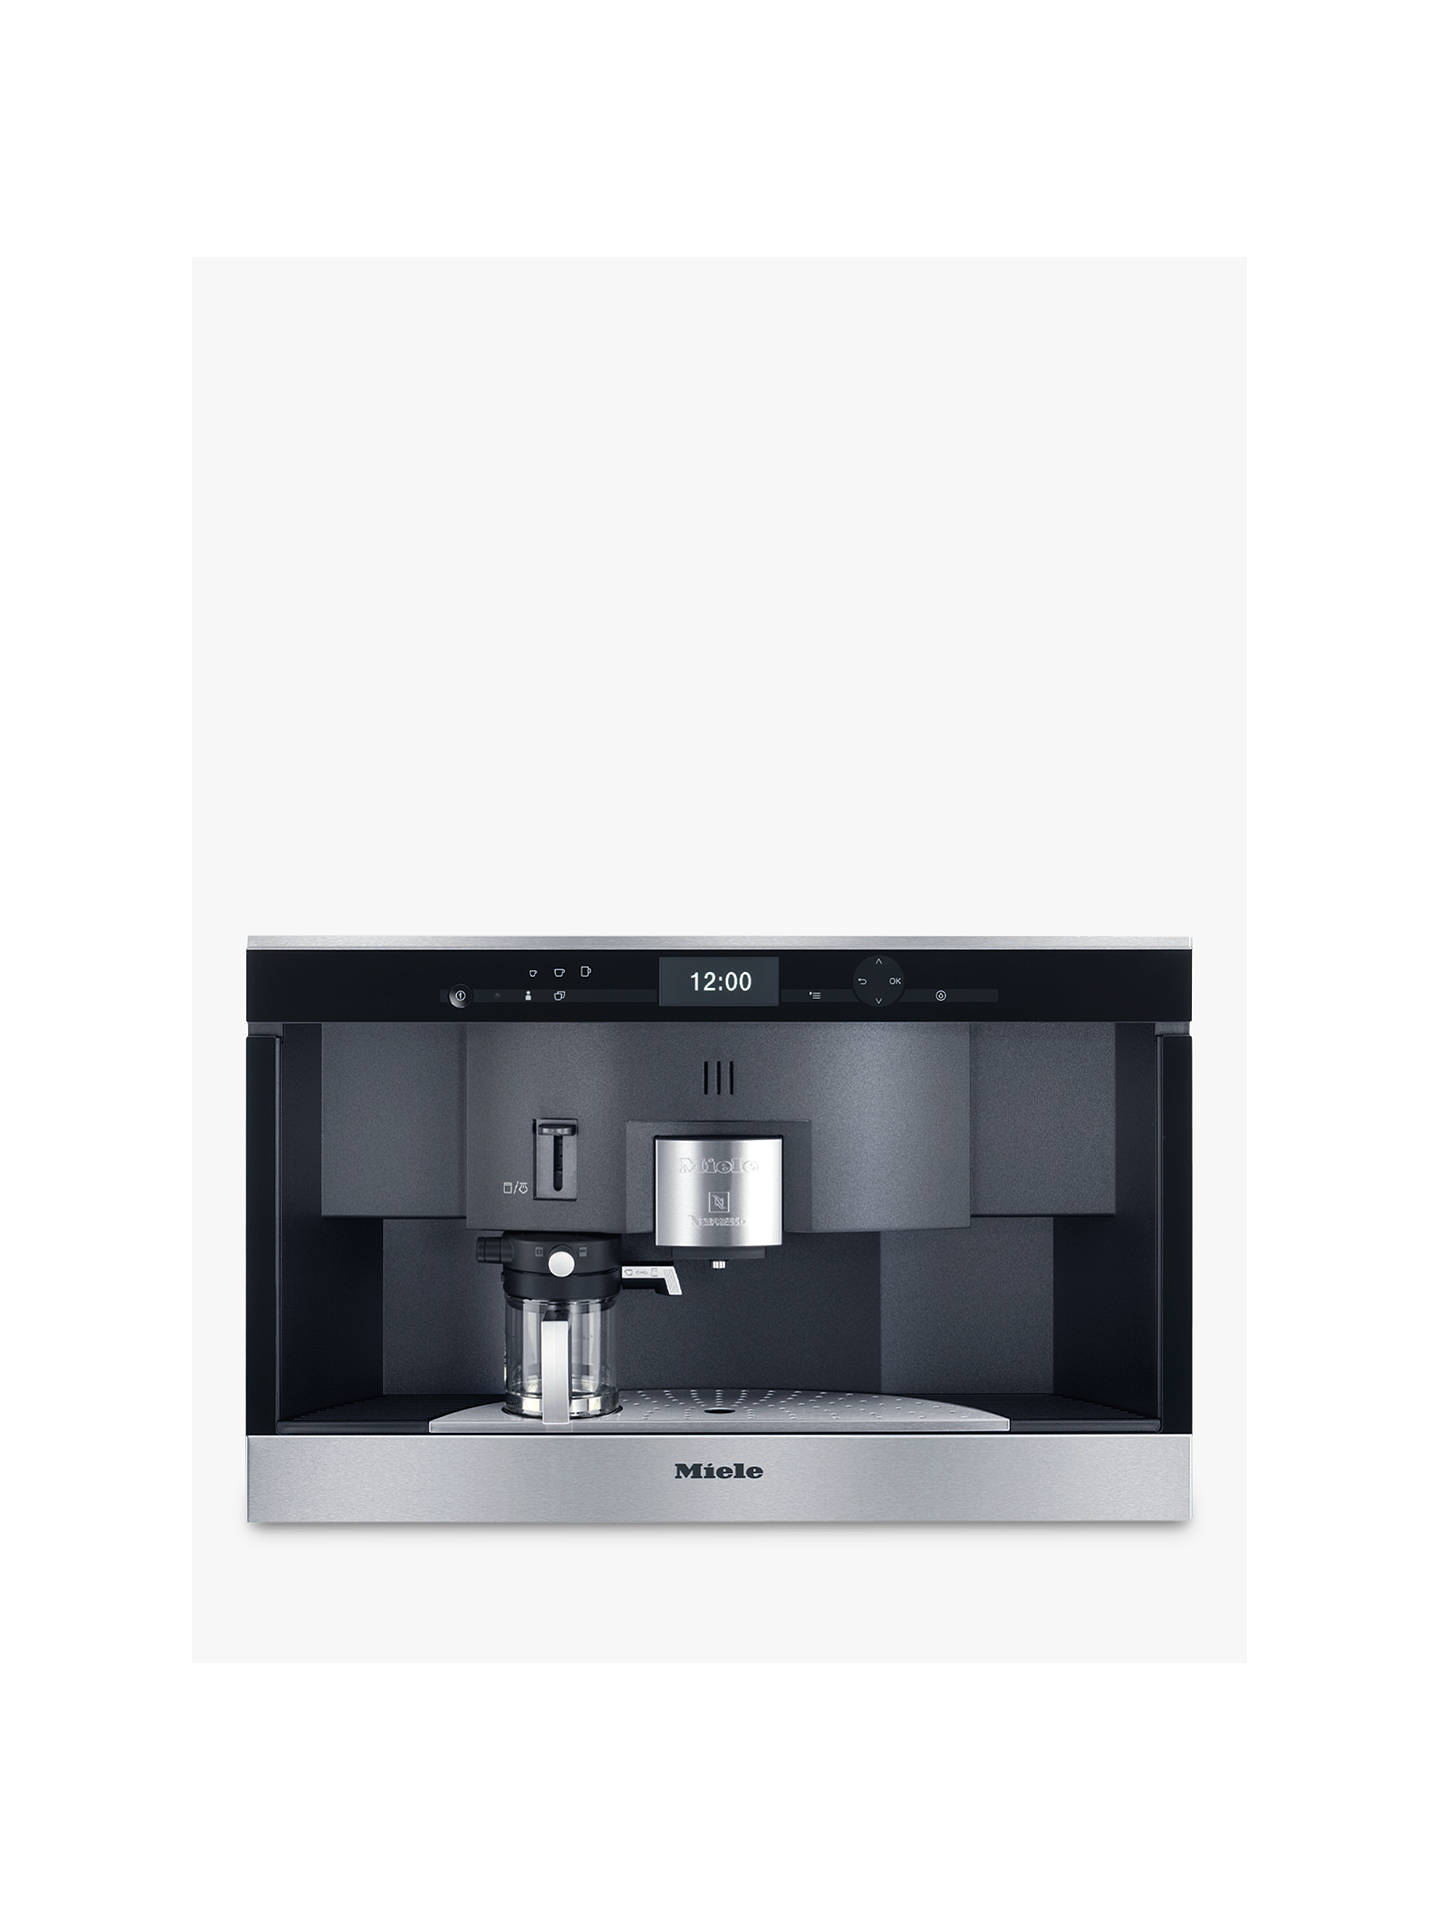 Miele Cva6431 Pureline Built In Nespresso Coffee Machine Clean Steel